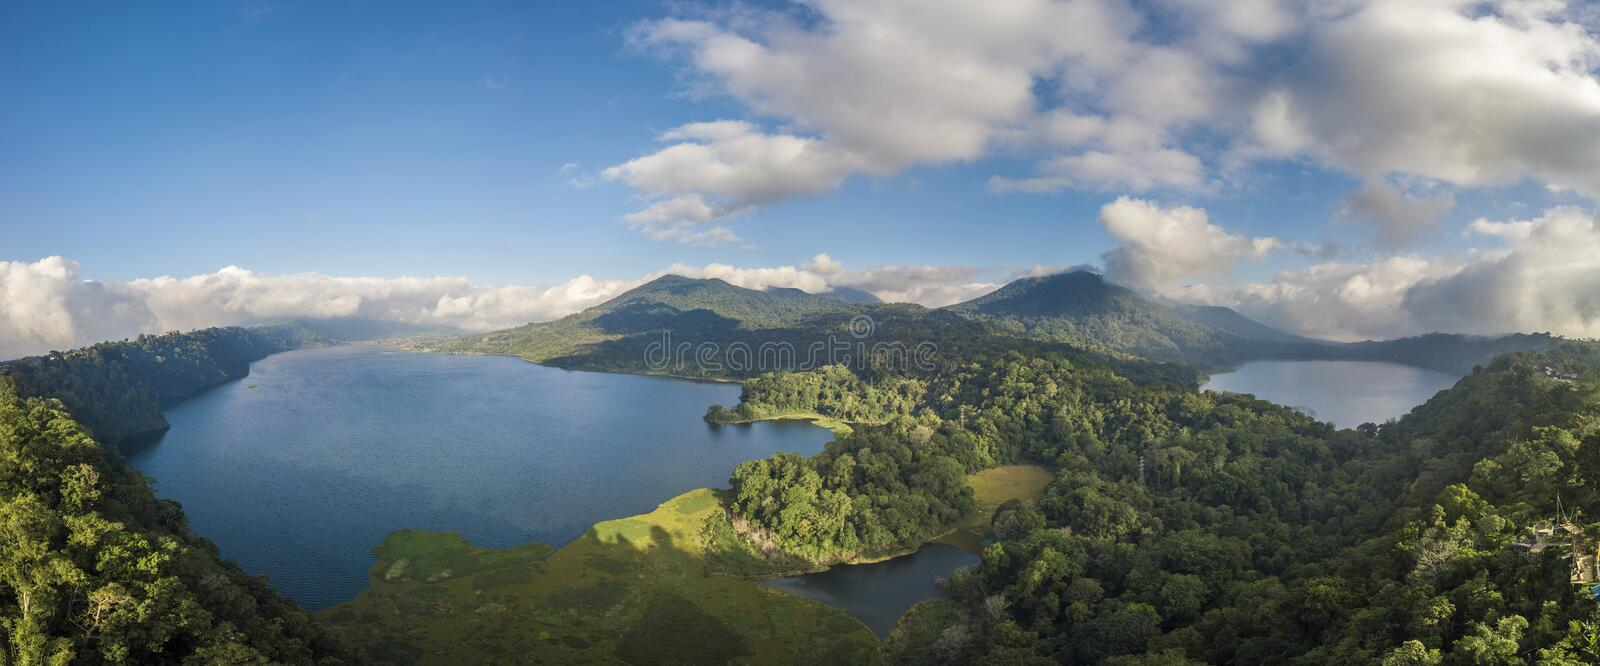 Lake in the middle of mountains of Bali royalty free stock photo